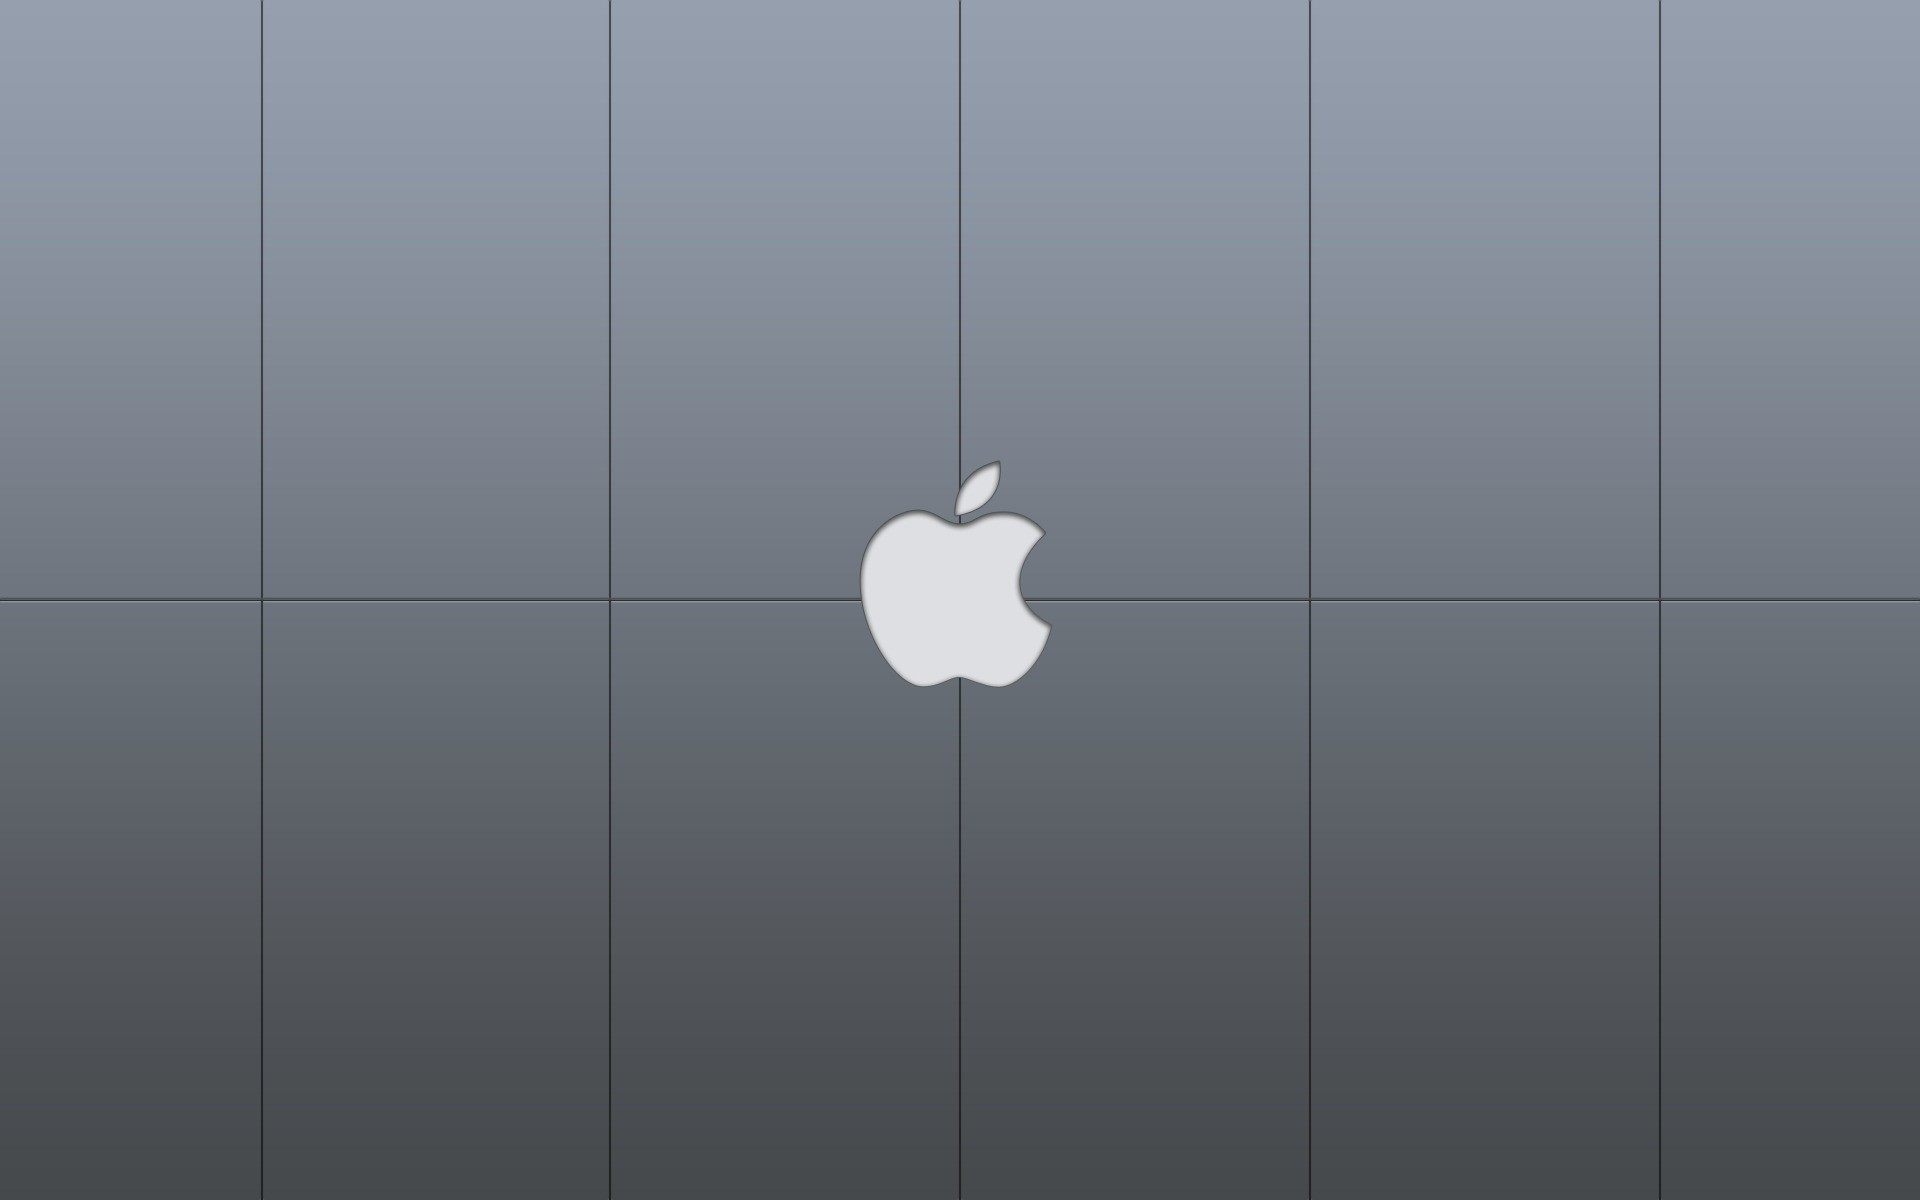 Gray wallpaper with the logo of Apple Macintosh.